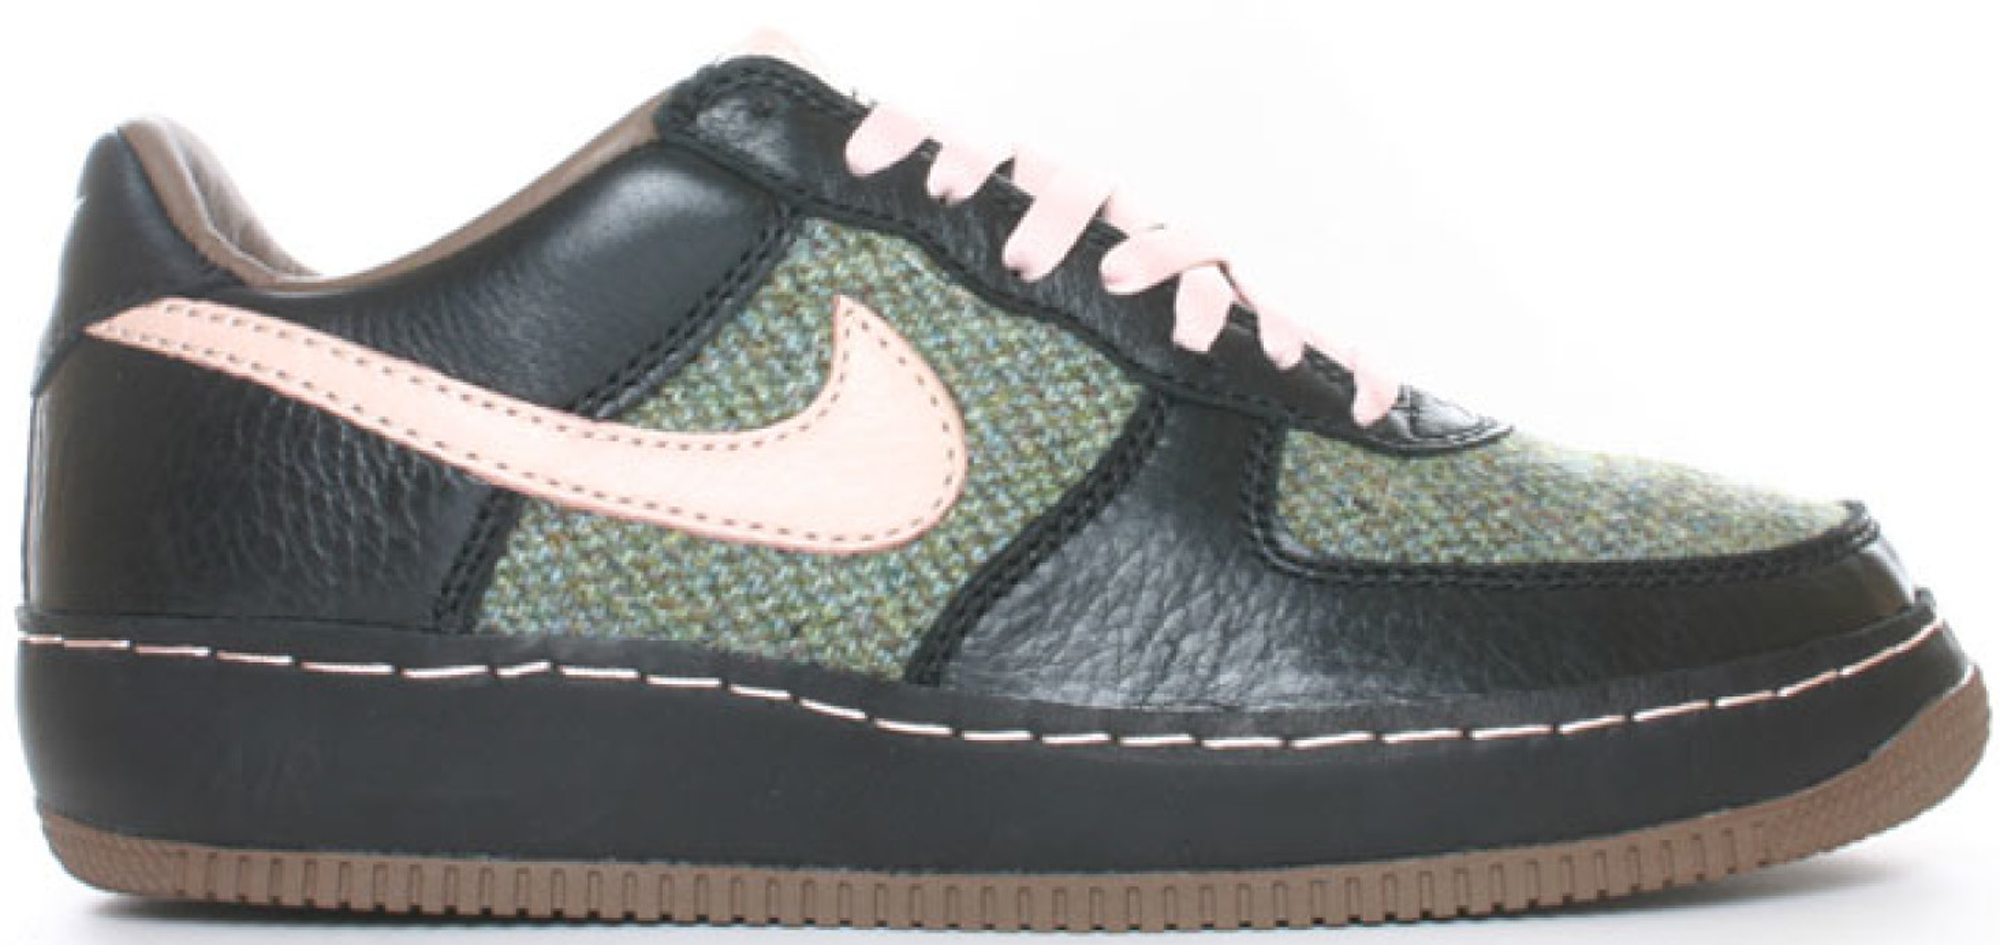 for whole family fashion style aliexpress Air Force 1 Low Insideout Tweed in Black/Cameo Rose-Classic Olive